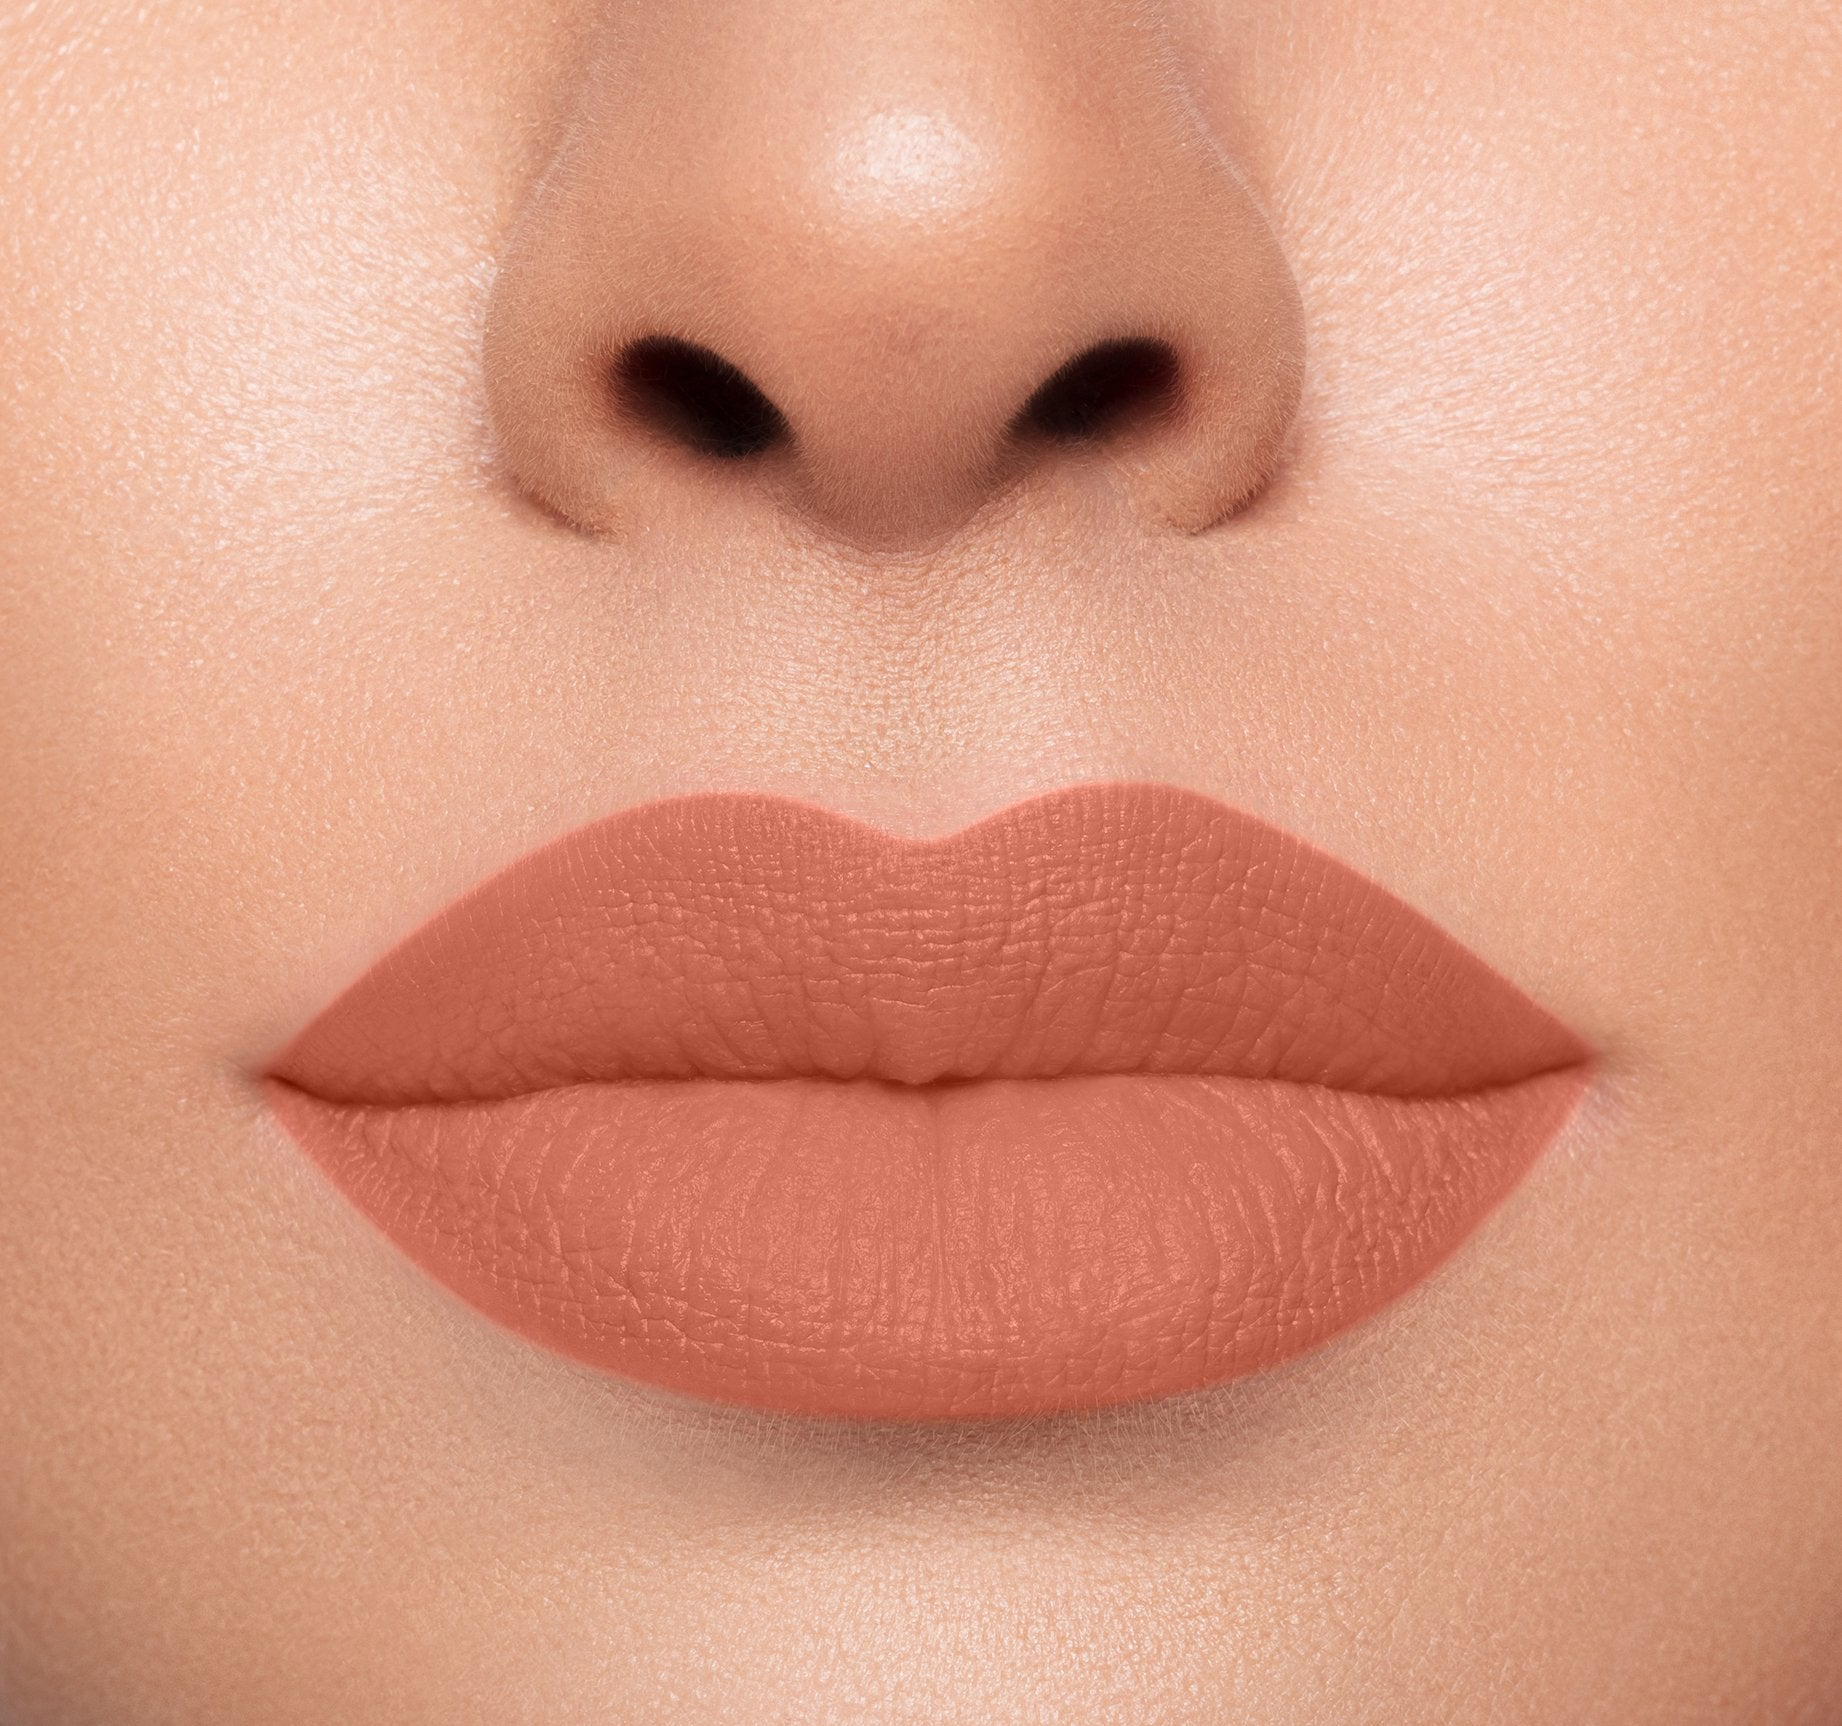 MEGA MATTE LIPSTICK - KISSY FACE ON MODEL, view larger image